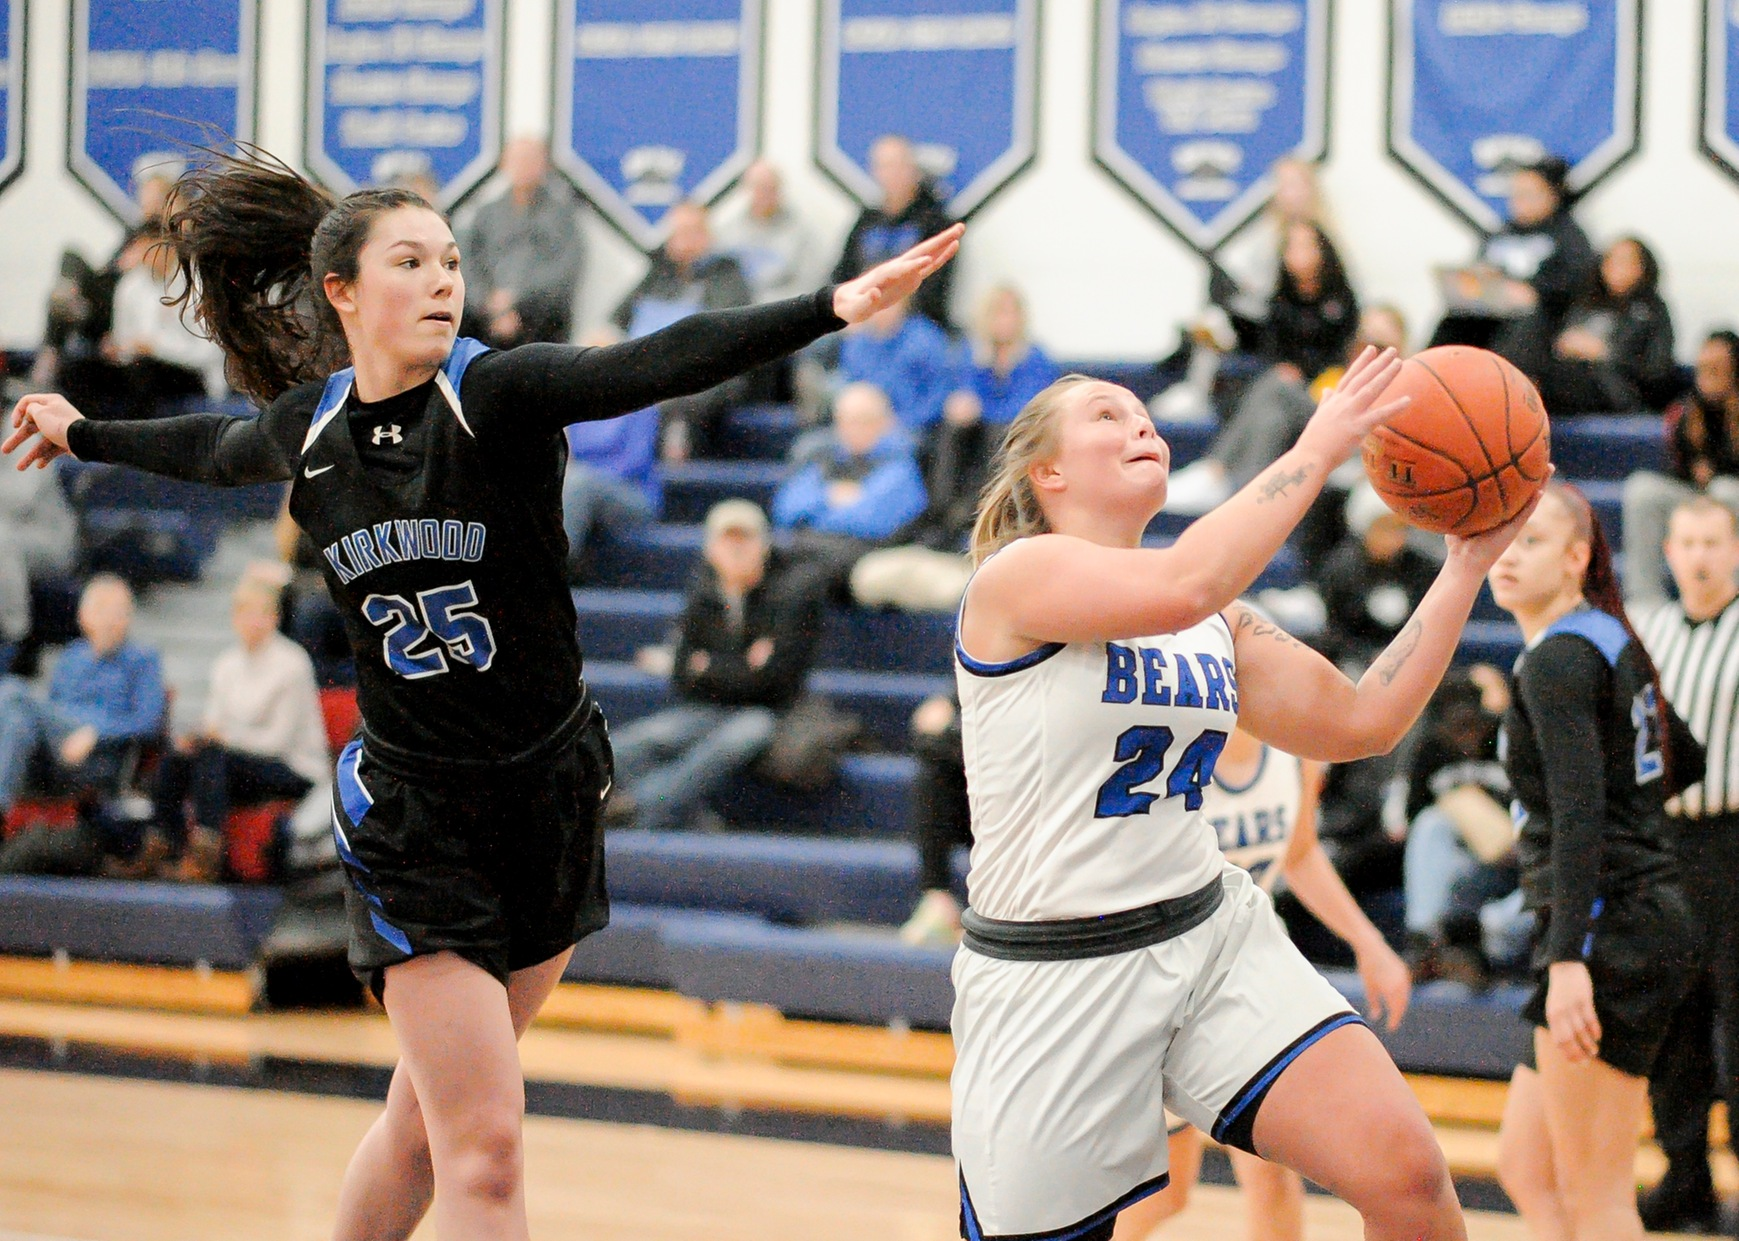 DMACC women's basketball team suffers 95-36 loss to KCC